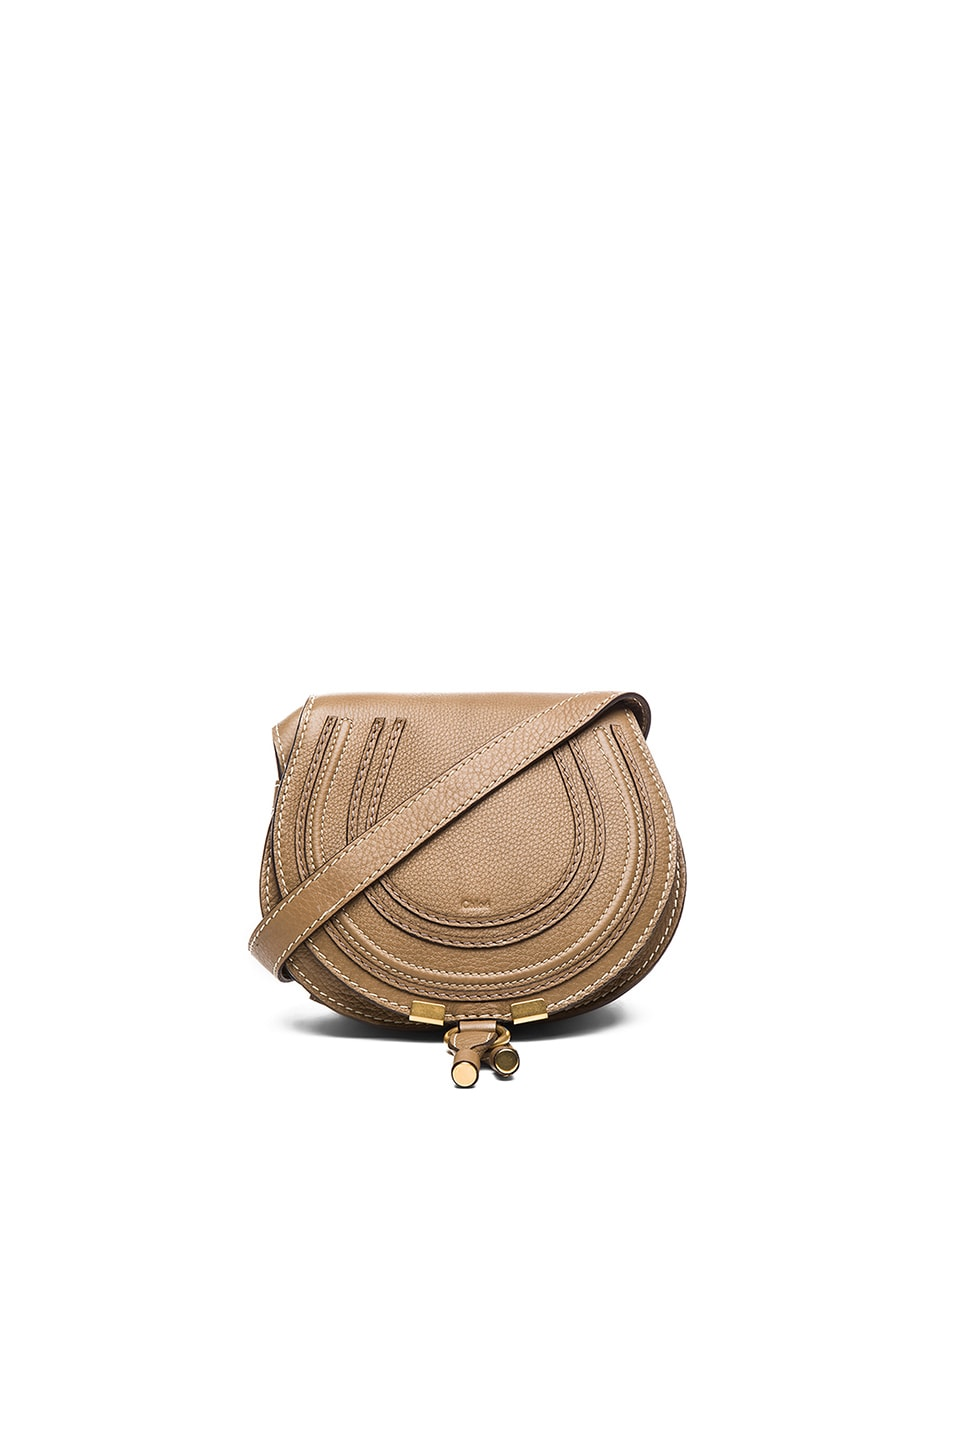 Image 1 of Chloe Small Marcie Saddle Bag in Nut